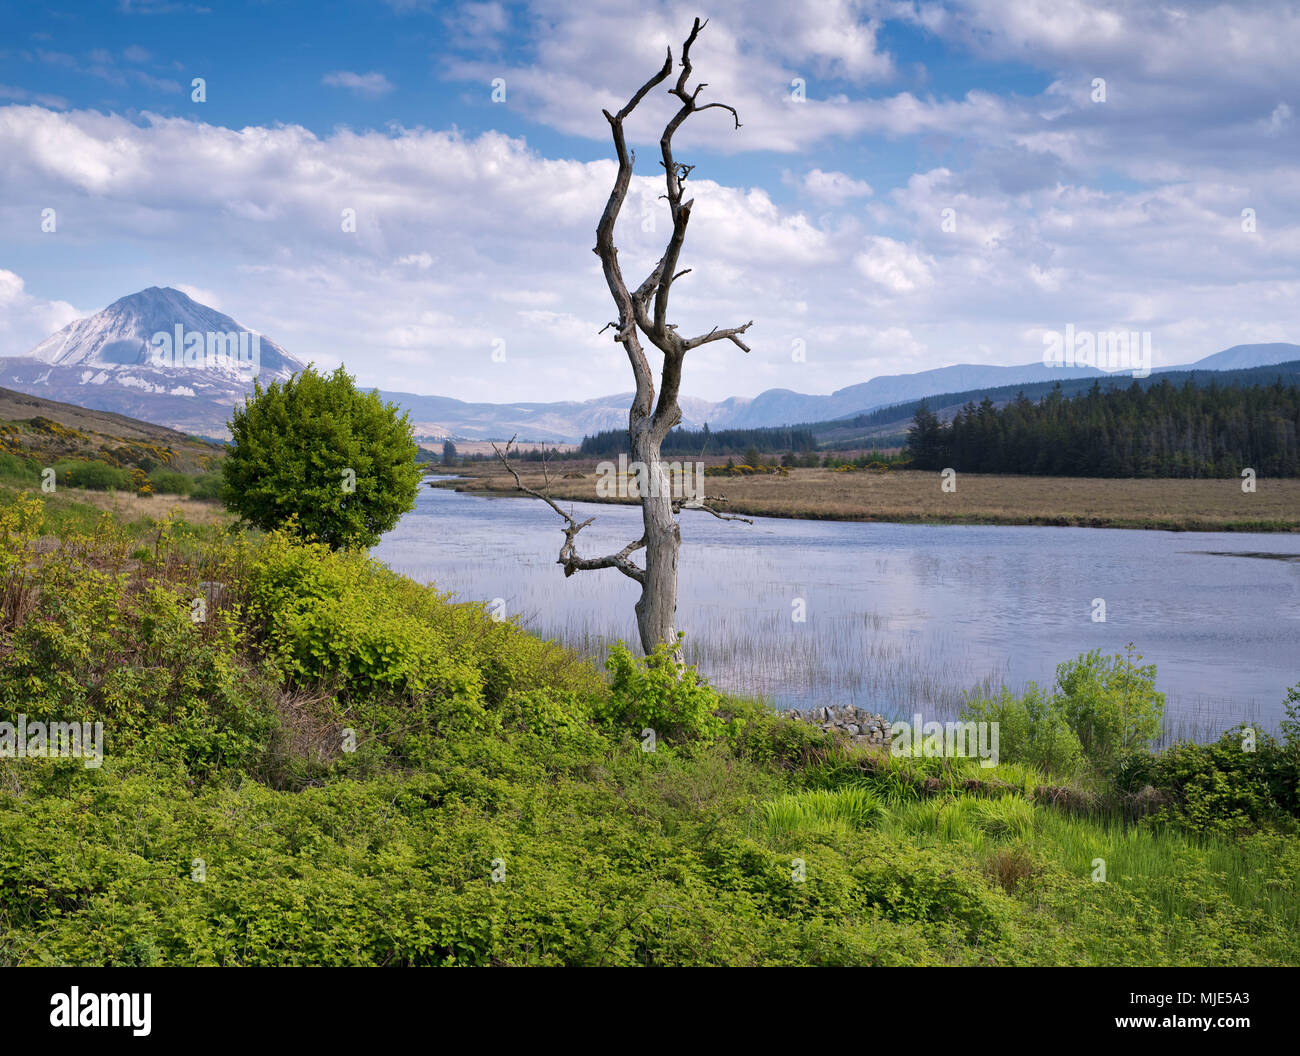 Ireland, Donegal, Glenveagh national park, view to the Mount Errigal at the Lough Nacung - Stock Image